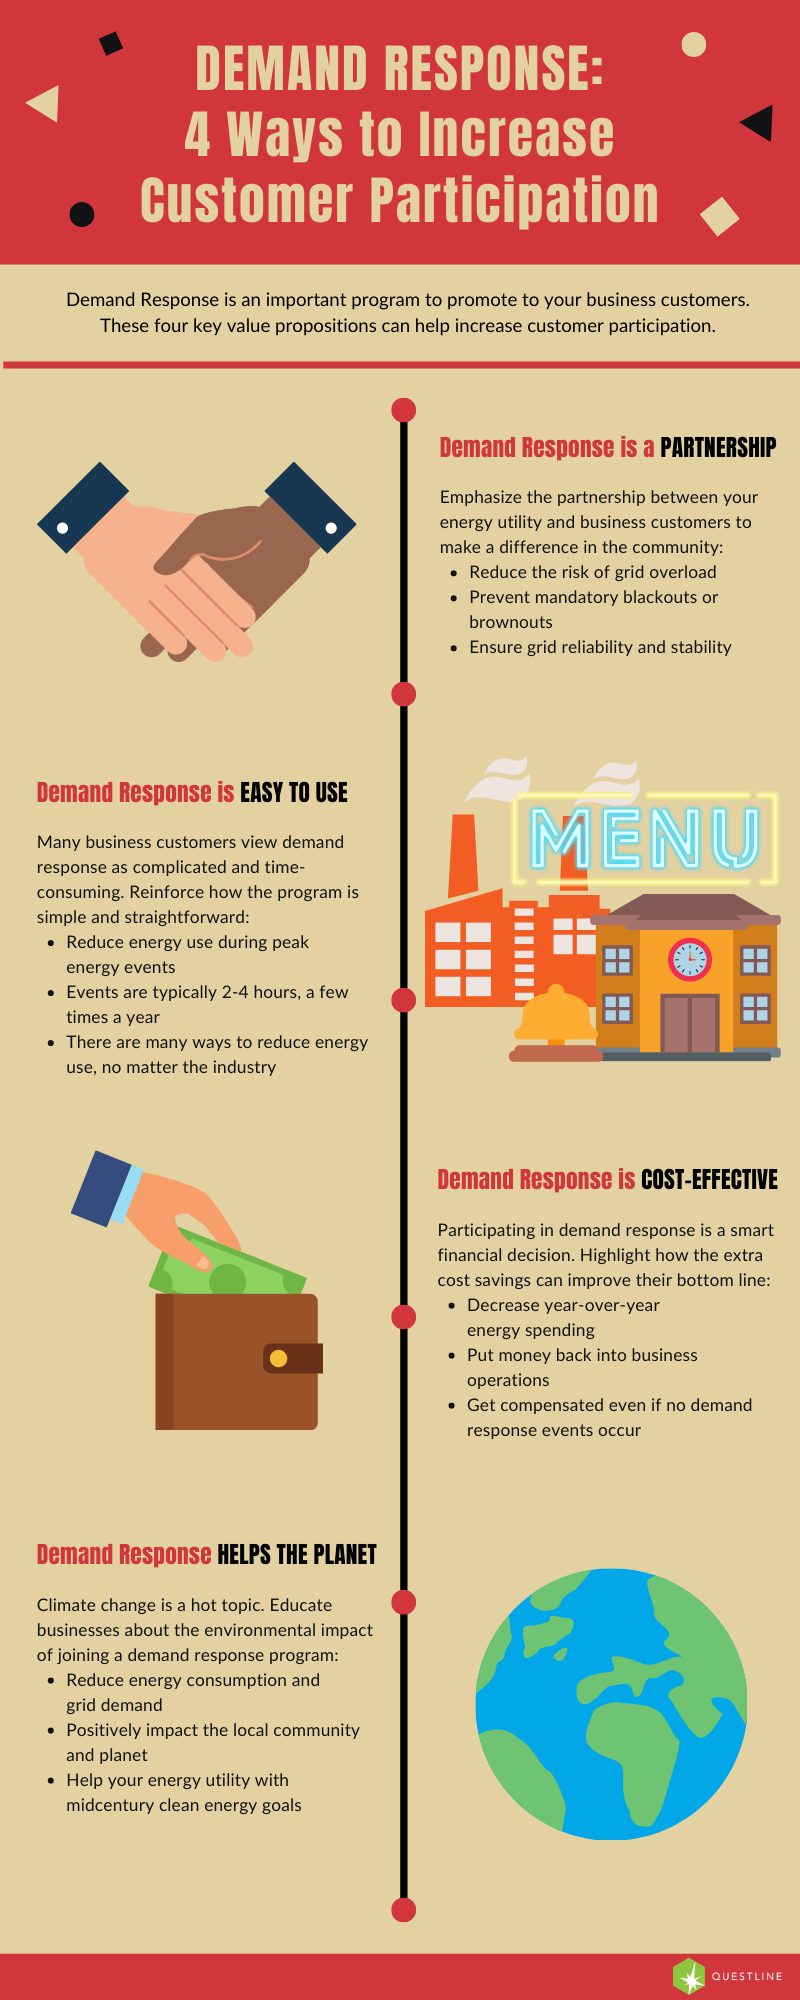 Infographic listing ways to get business customers to participate in demand response programs